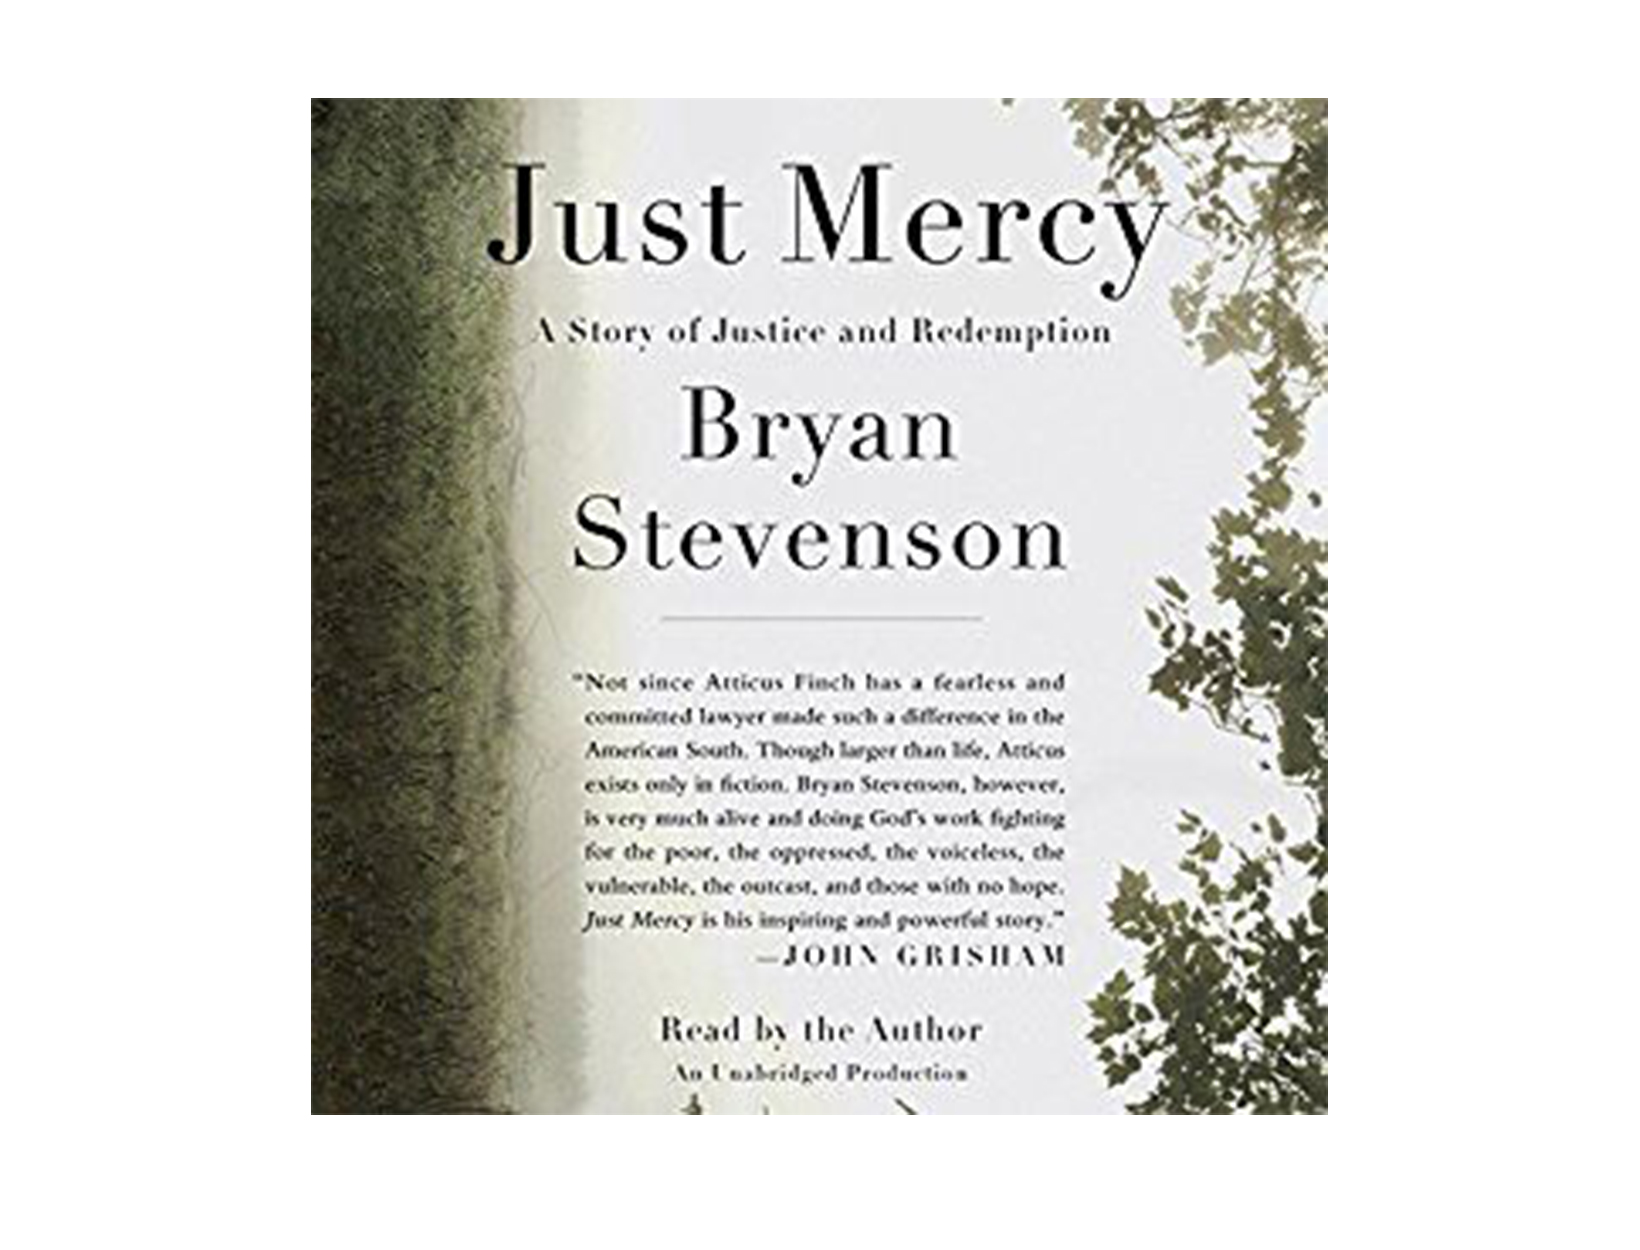 Just Mercy, written & read by Bryan Stevenson